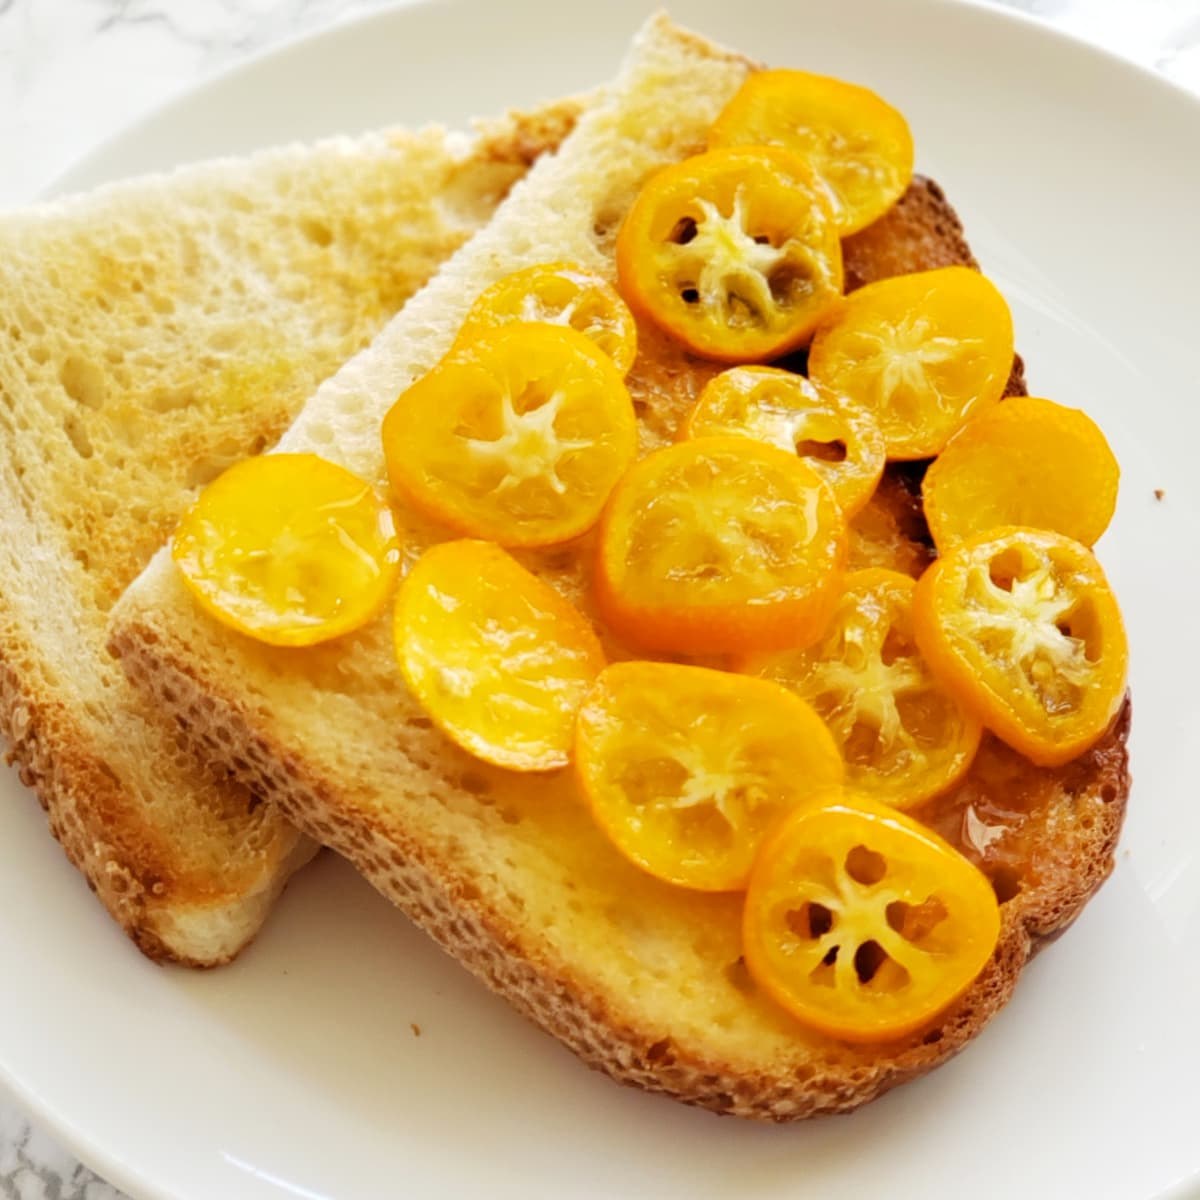 Candied Kumquats on sourdough toast on a white plate